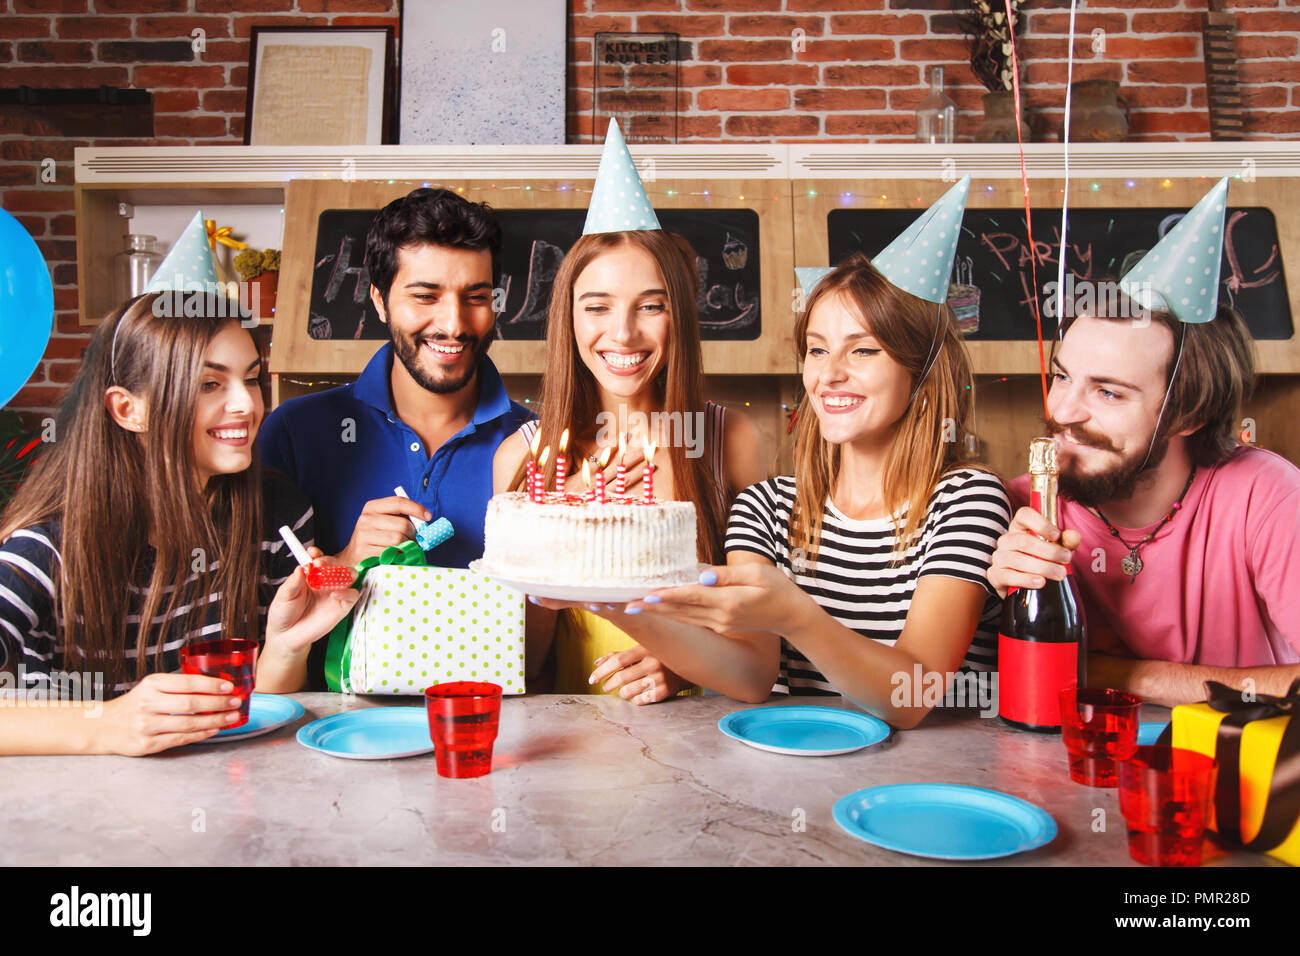 Excited woman ready to blow out candles on white frosting cake on table at birthday party with happy friends - Stock Image